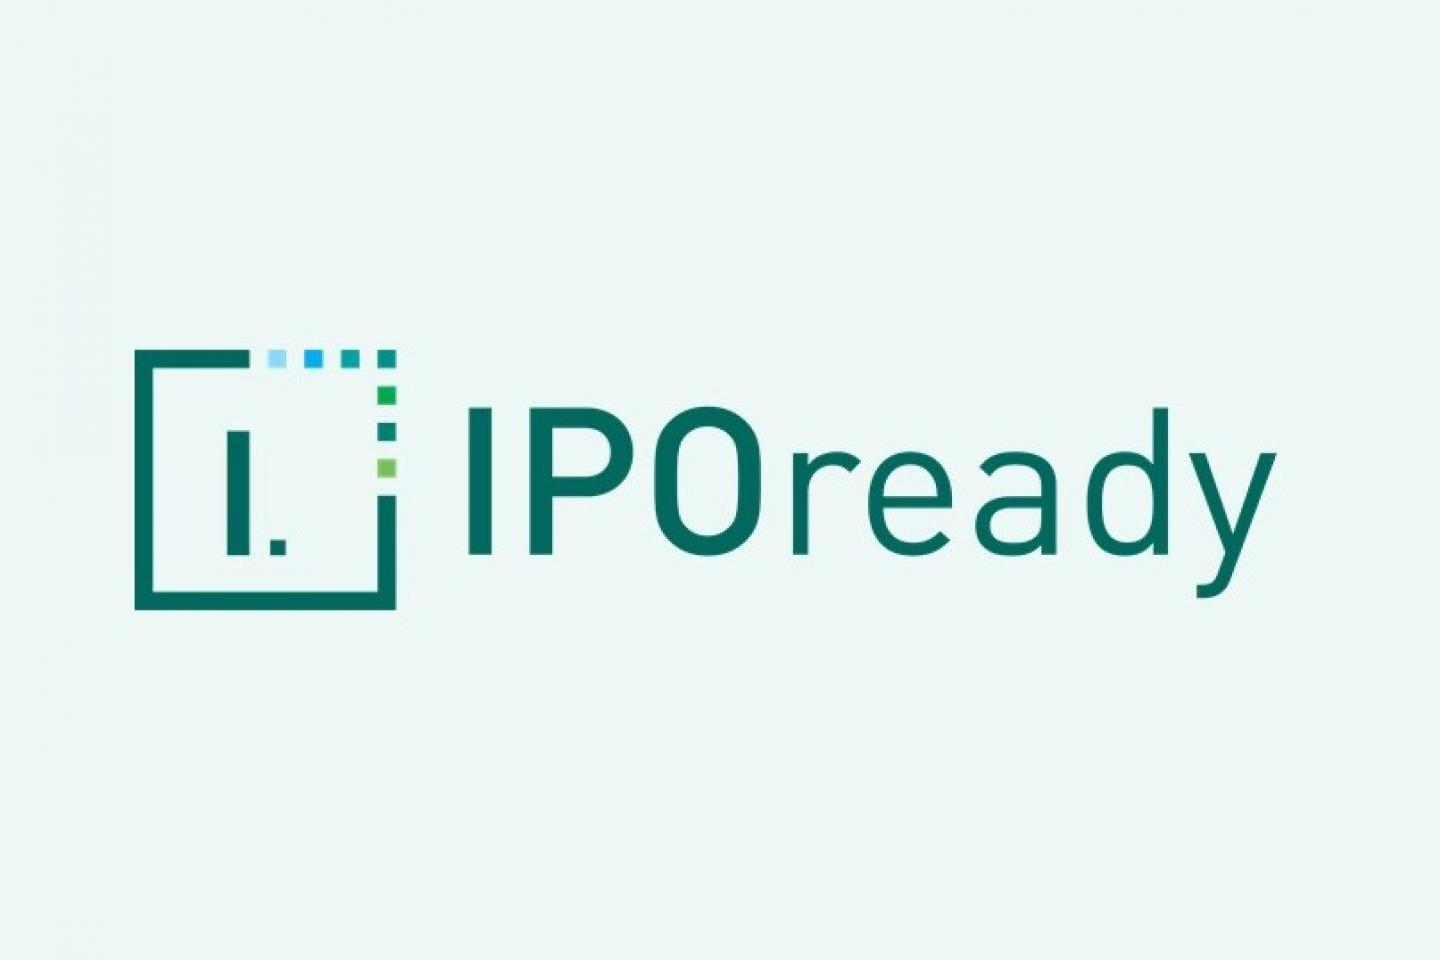 IPOready logo green 3x2 ratio